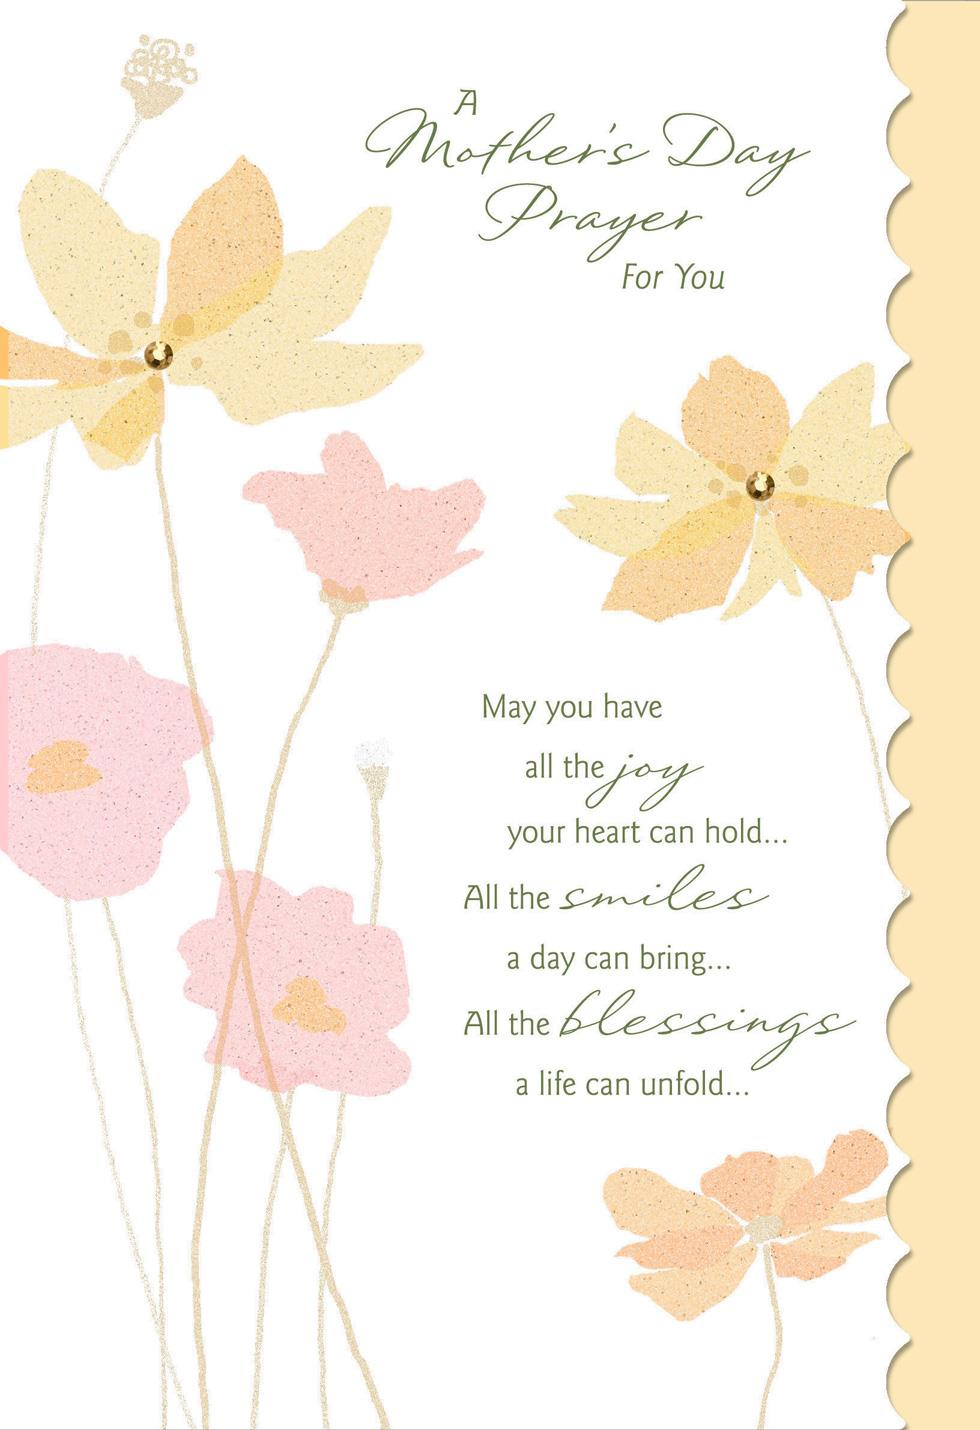 A prayer for you religious mothers day card greeting cards hallmark a prayer for you religious mothers day card m4hsunfo